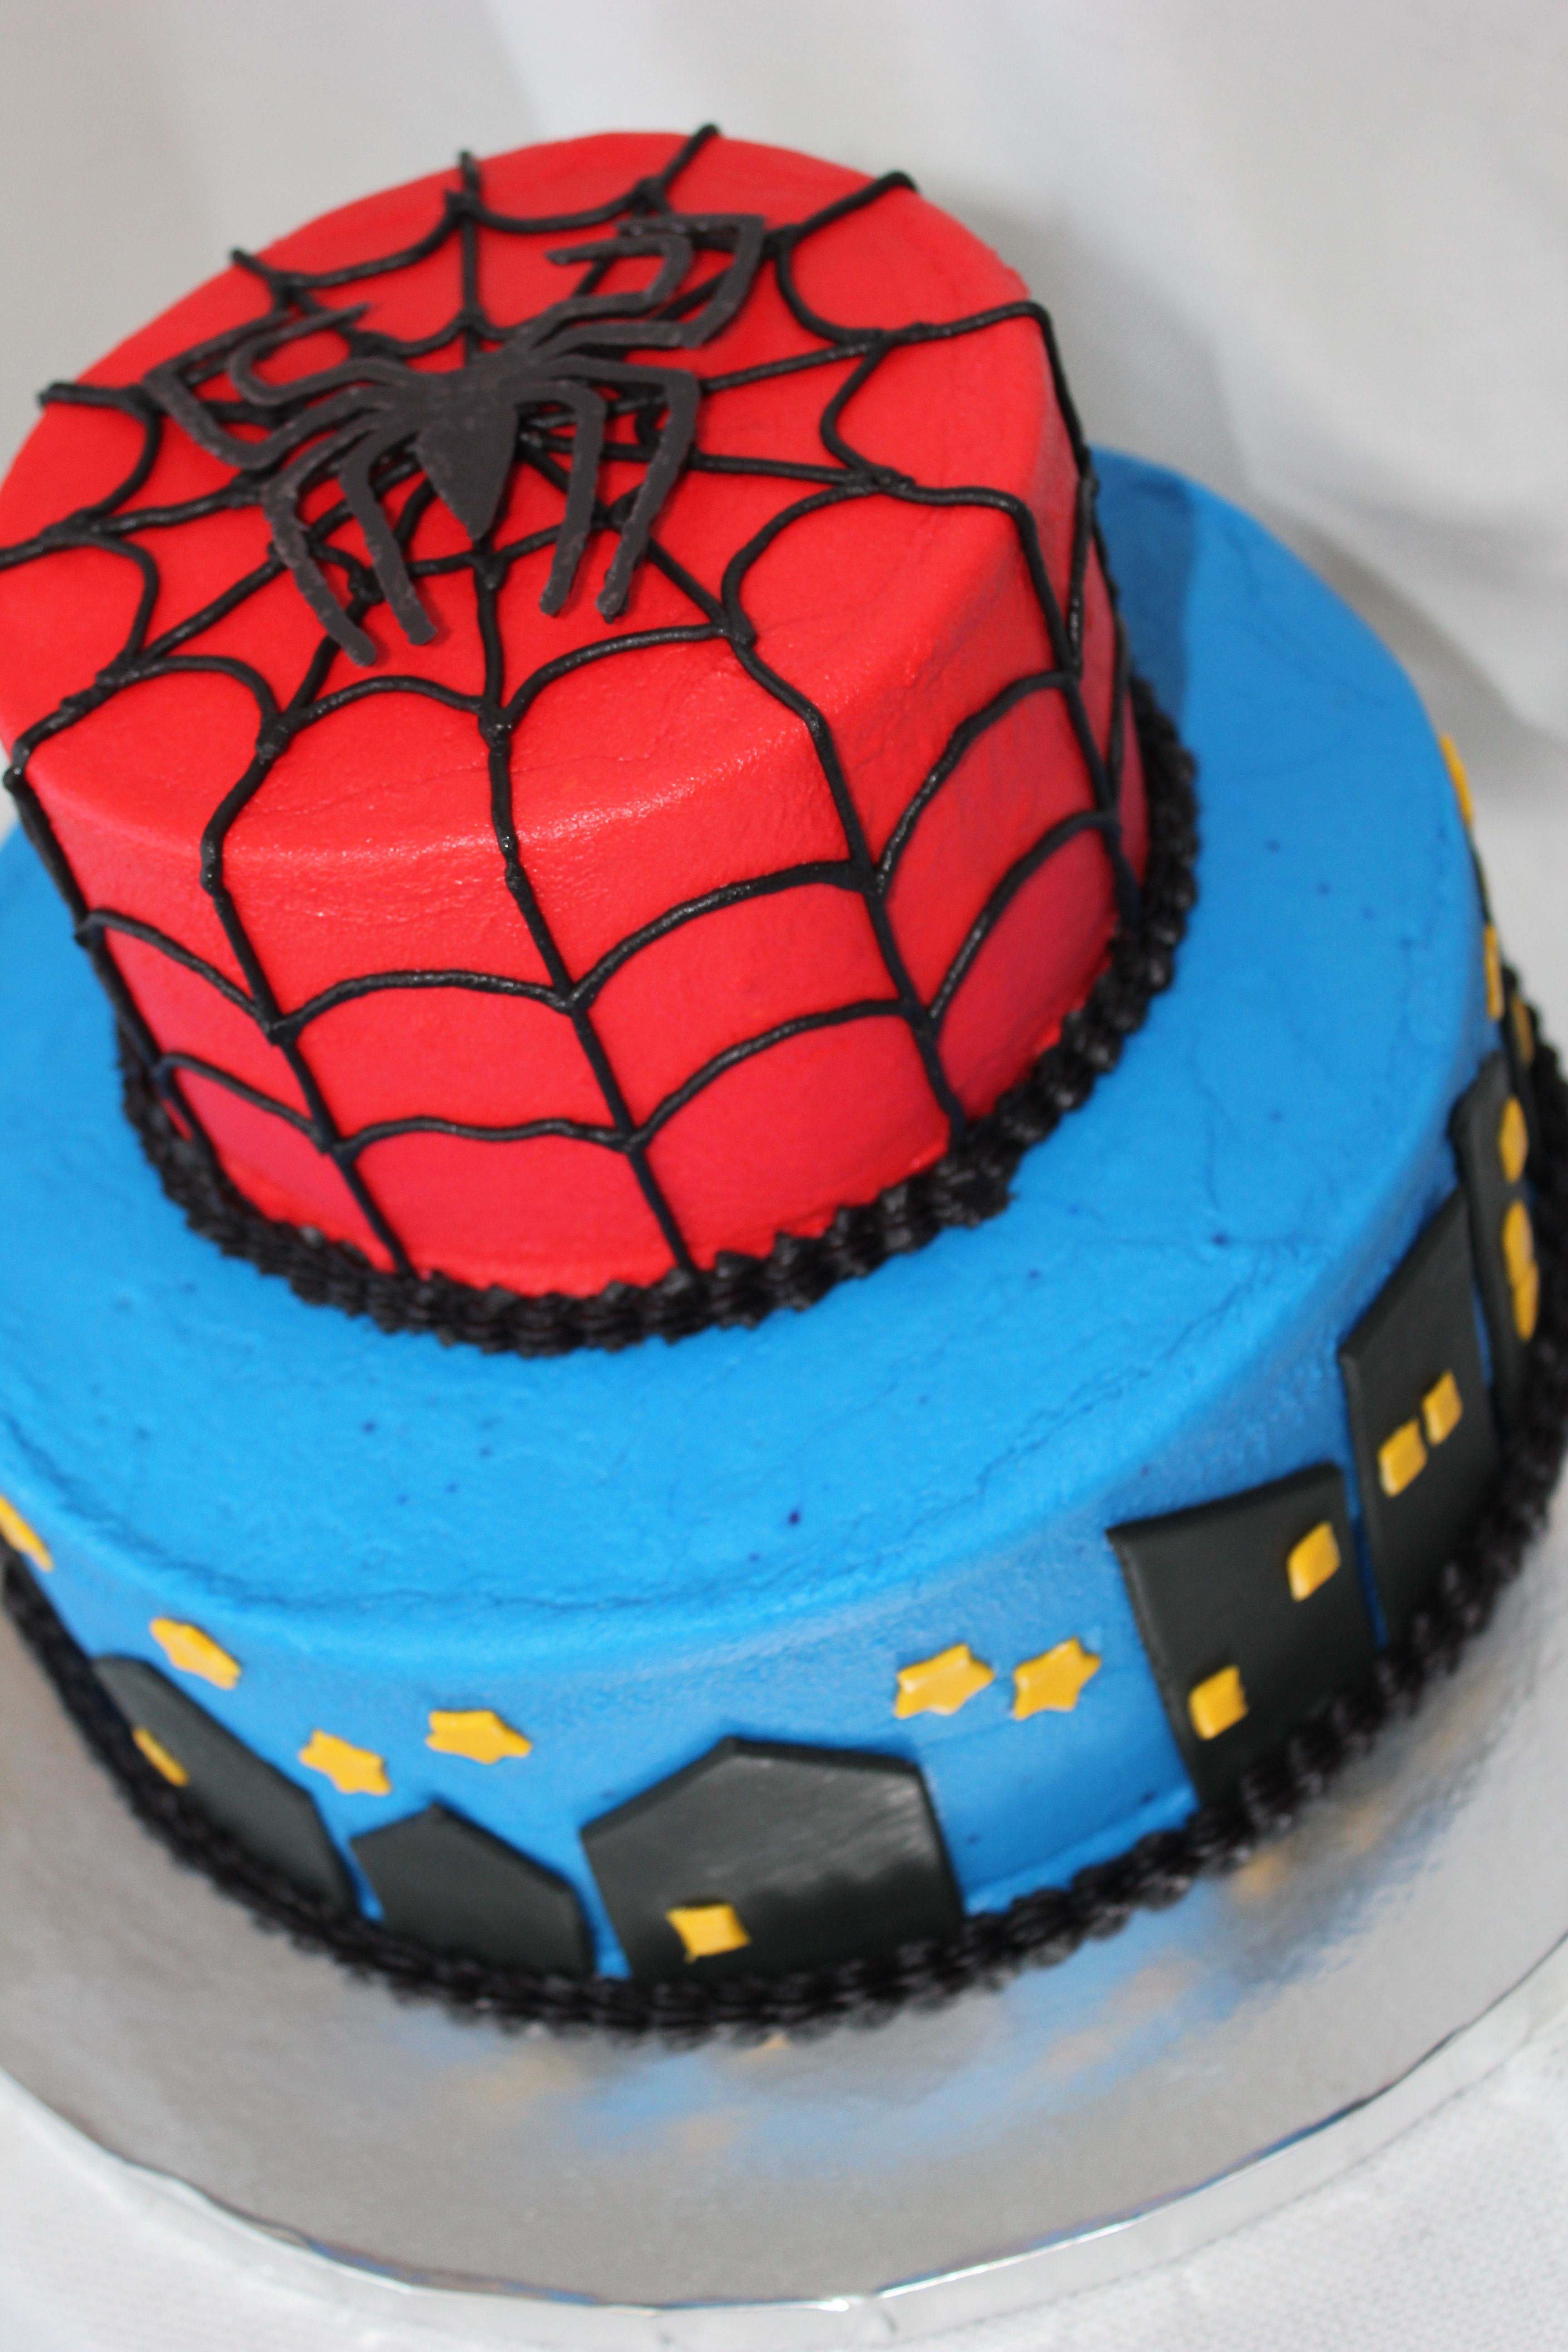 Pleasant Spiderman Cake Made From Buttercream With Fondant And Chocolate Funny Birthday Cards Online Inifofree Goldxyz